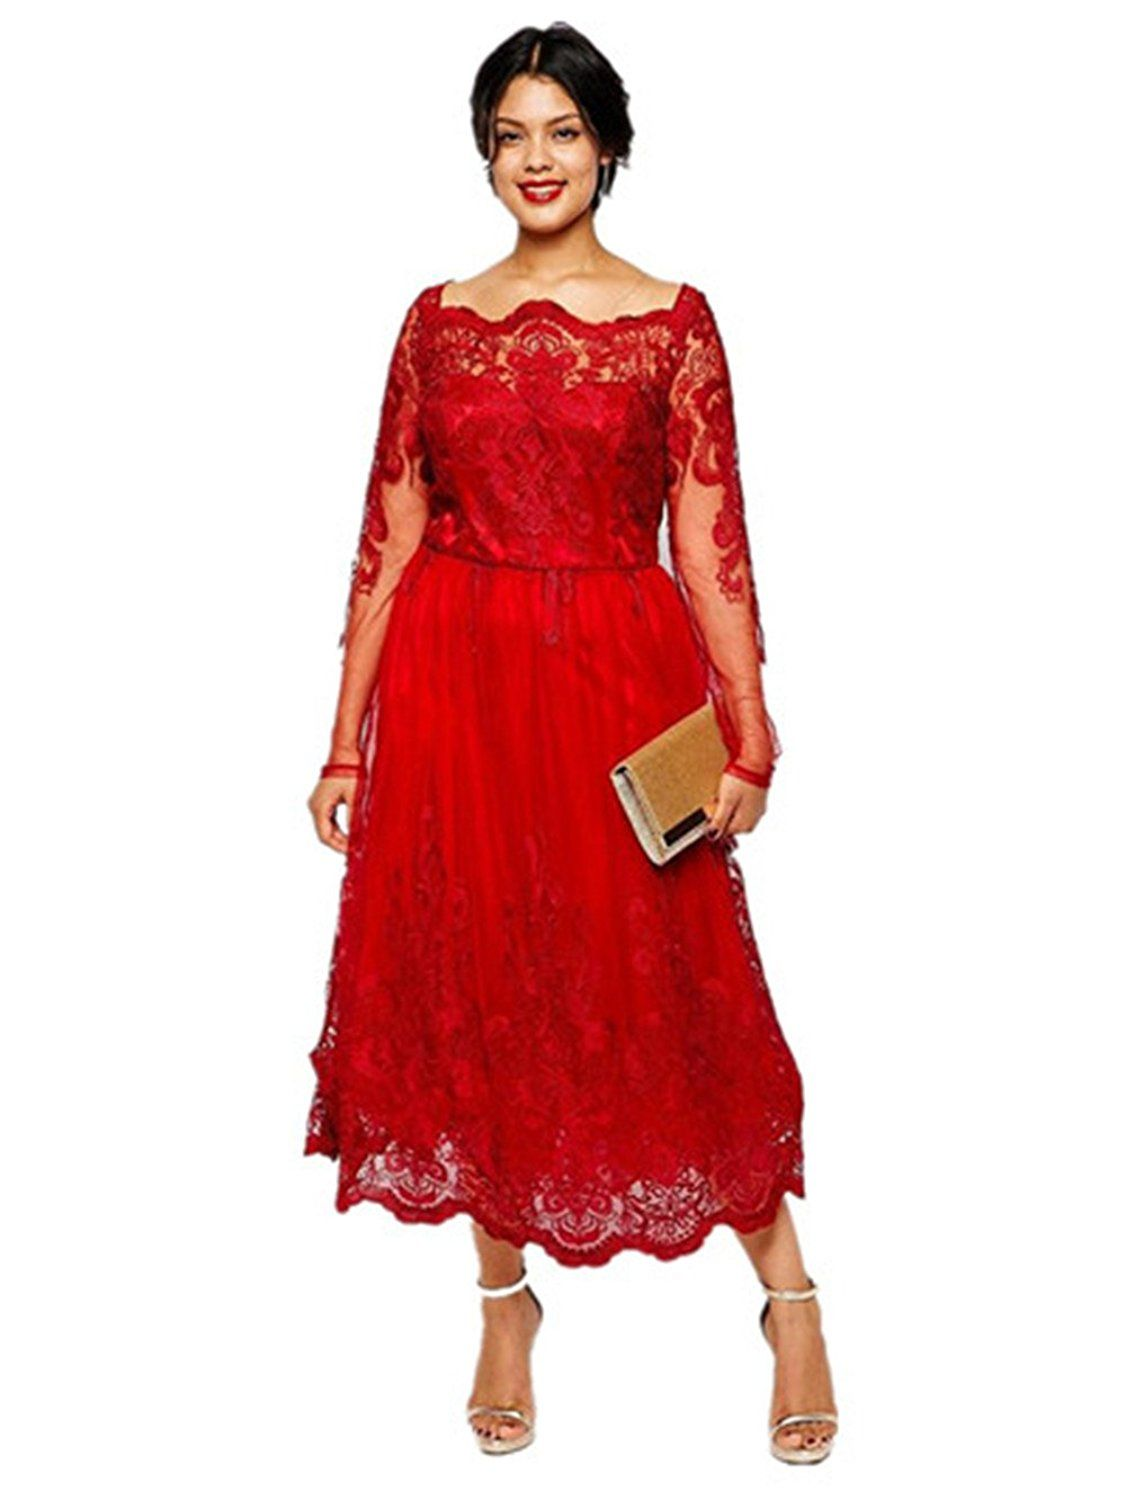 Fenghuavip plus size long sleeves lace red tulle women evening